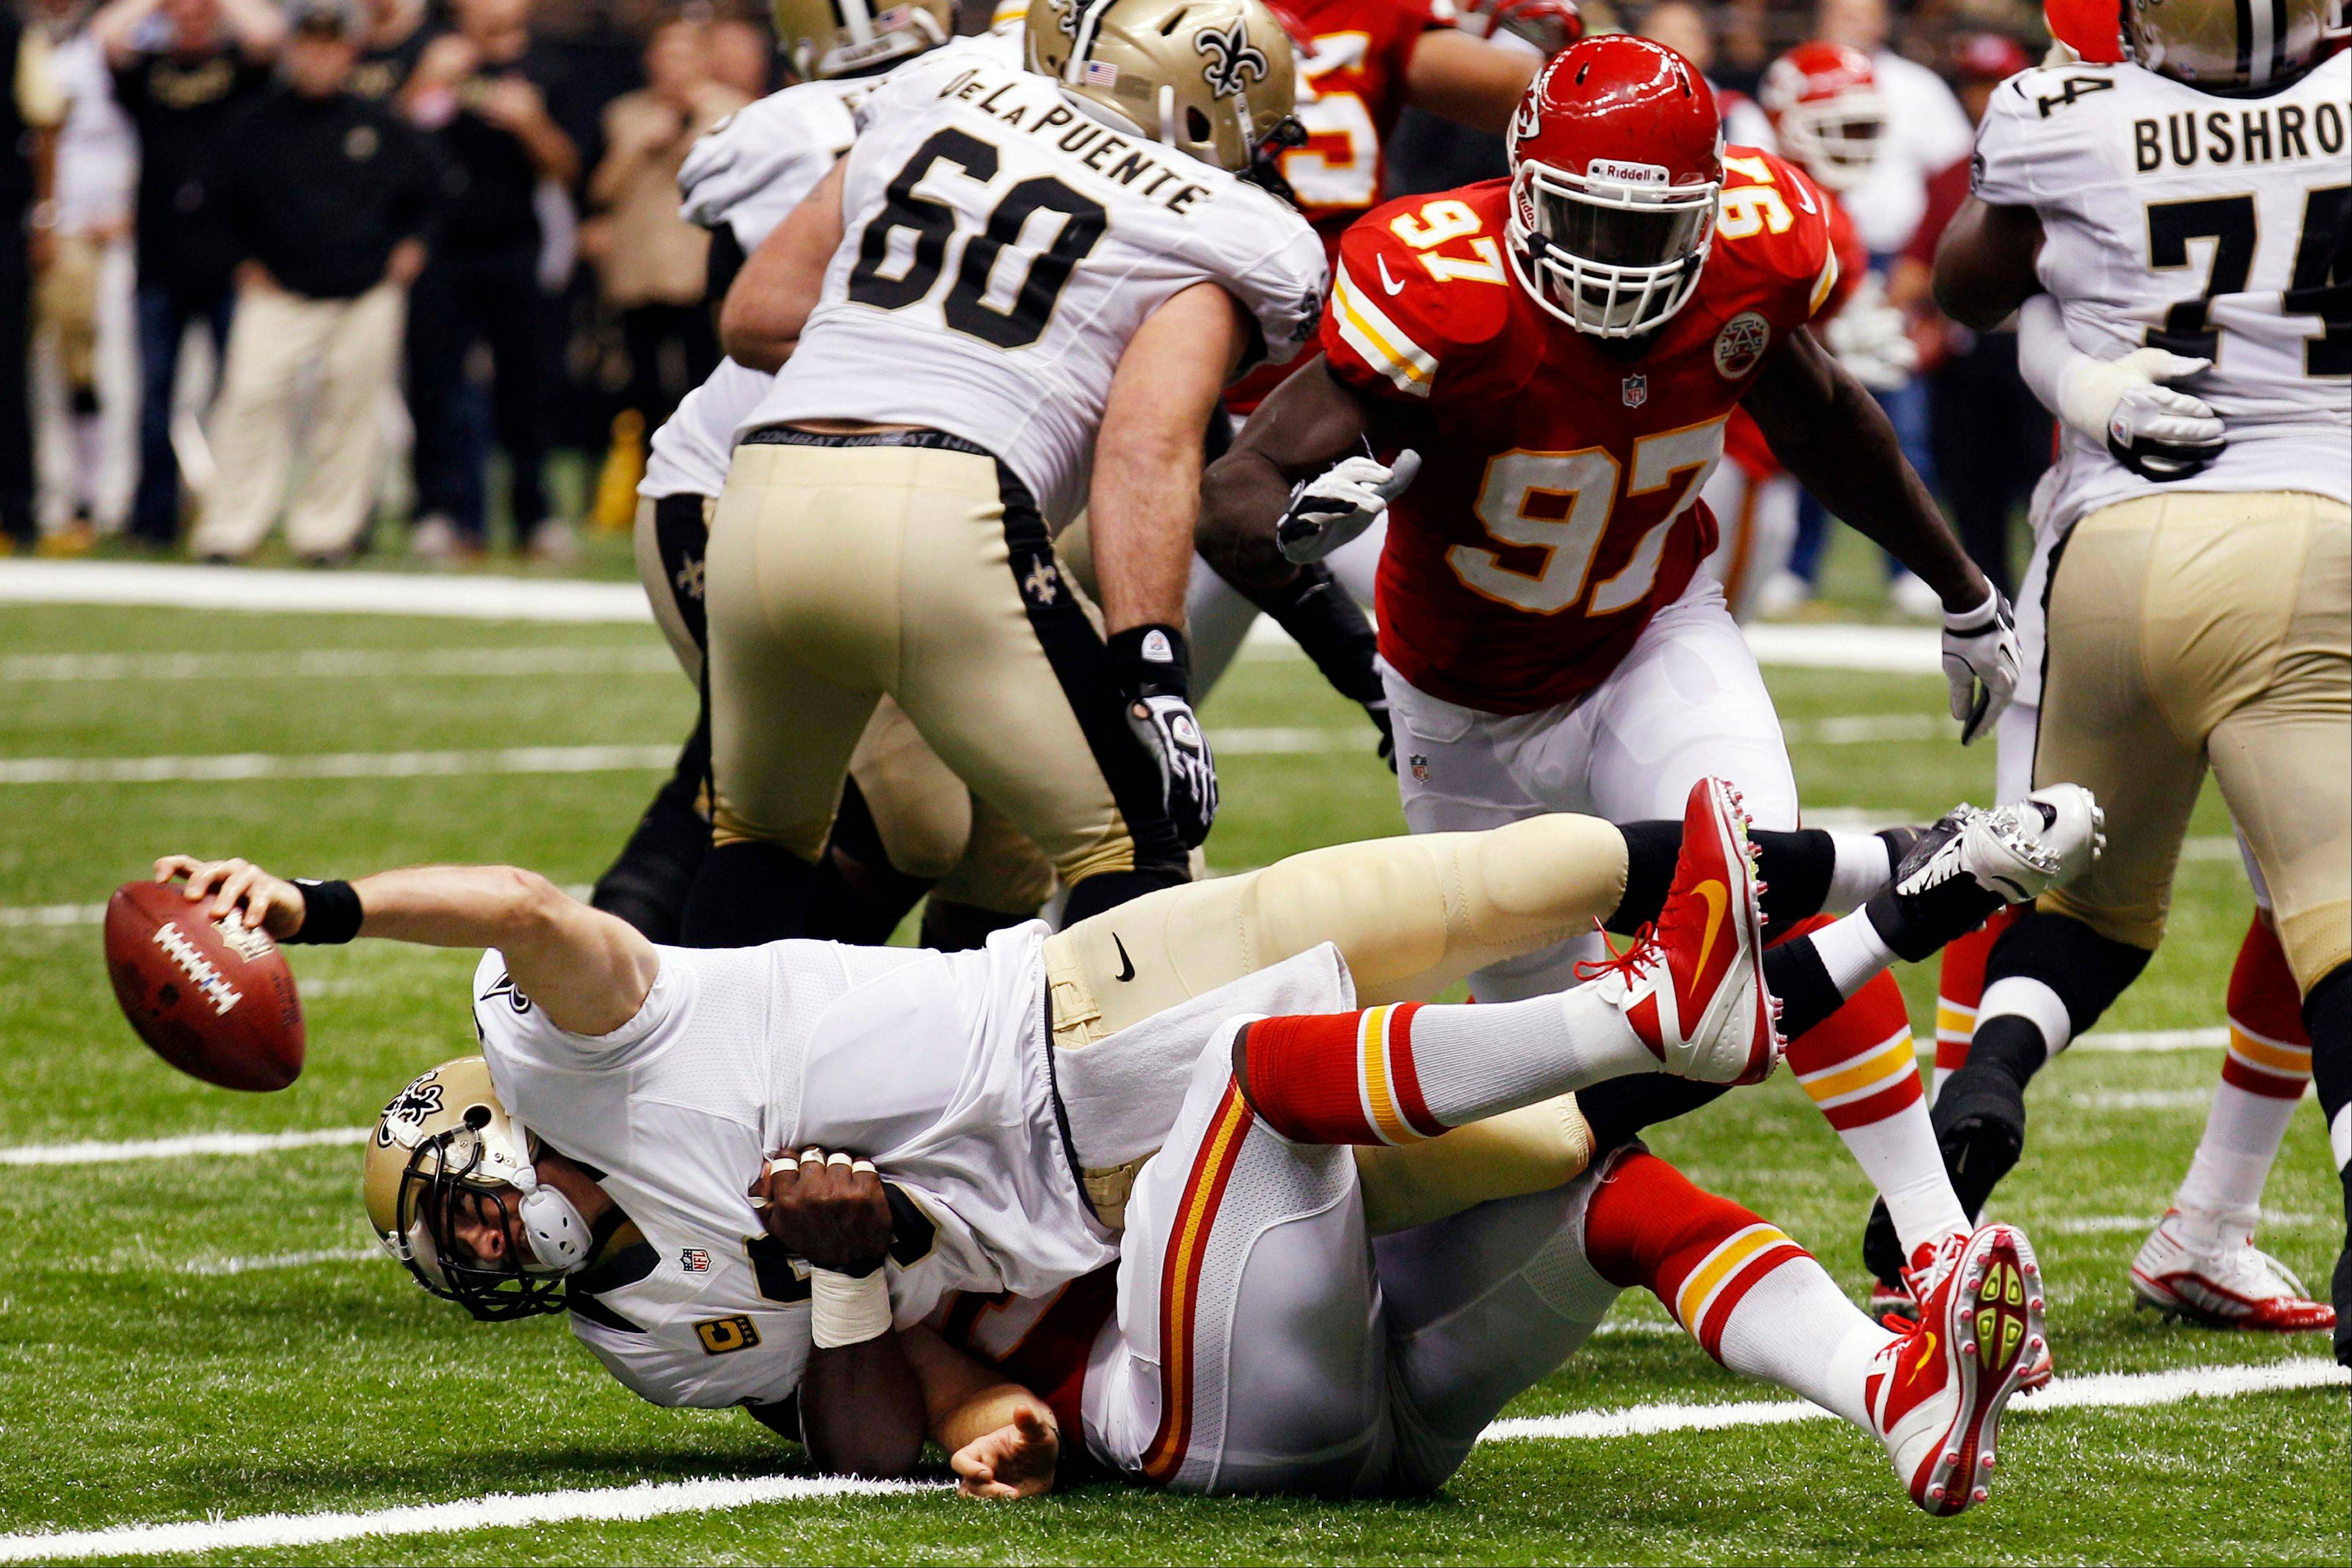 The Chiefs sack Saints quarterback Drew Brees for a safety in the second half Sunday in New Orleans.